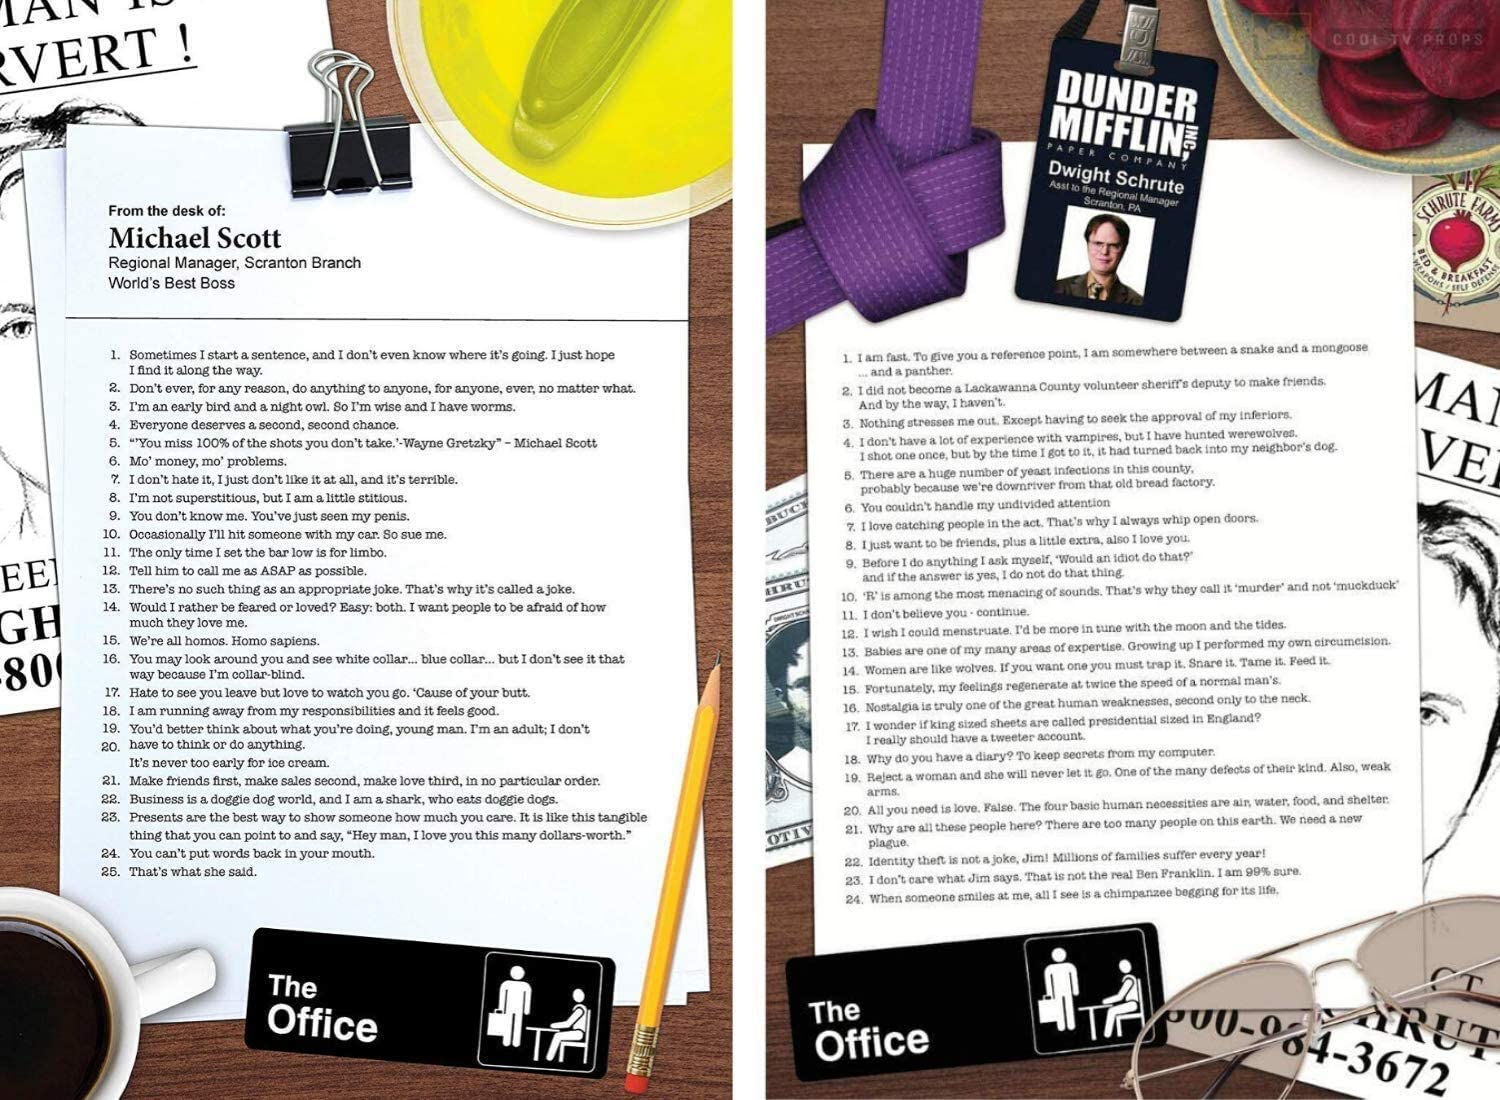 Cool TV Props - The Office Posters (Bundle)